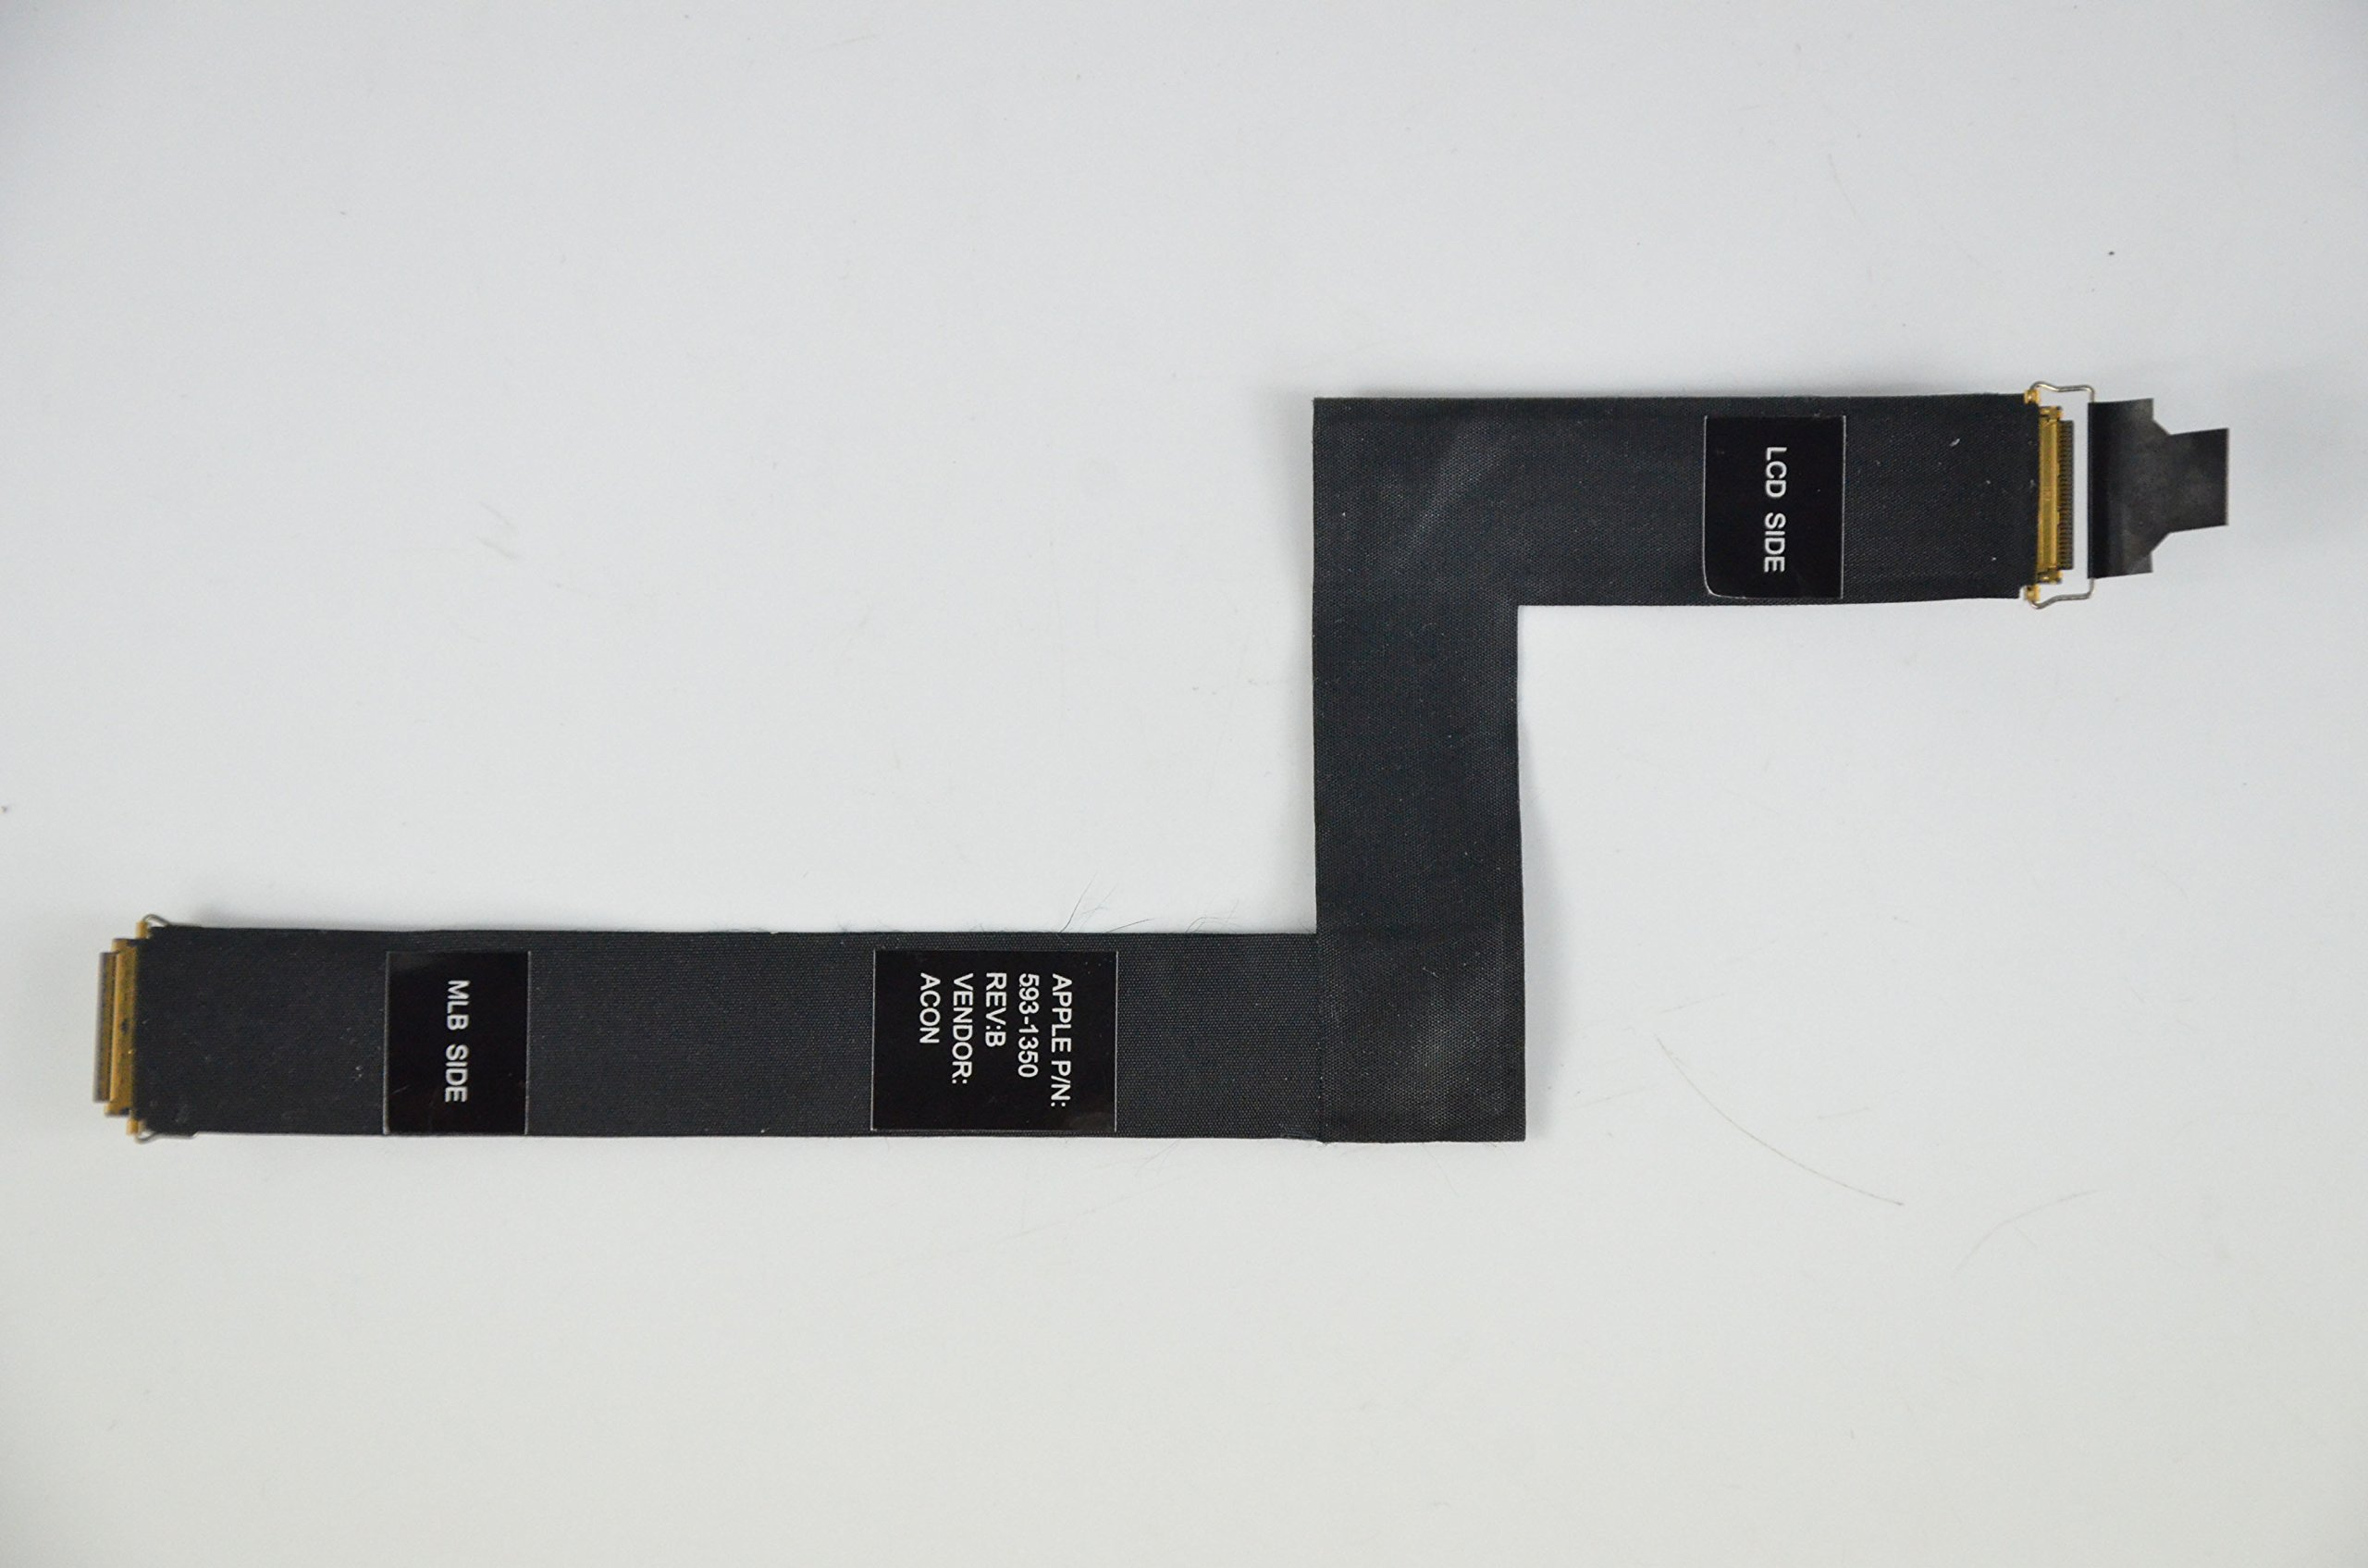 """Eathtek New LCD LED LVDS Display Cable 593-1350 593-1350-B For Apple iMac 21.5"""" A1311 922-9811 2011"""